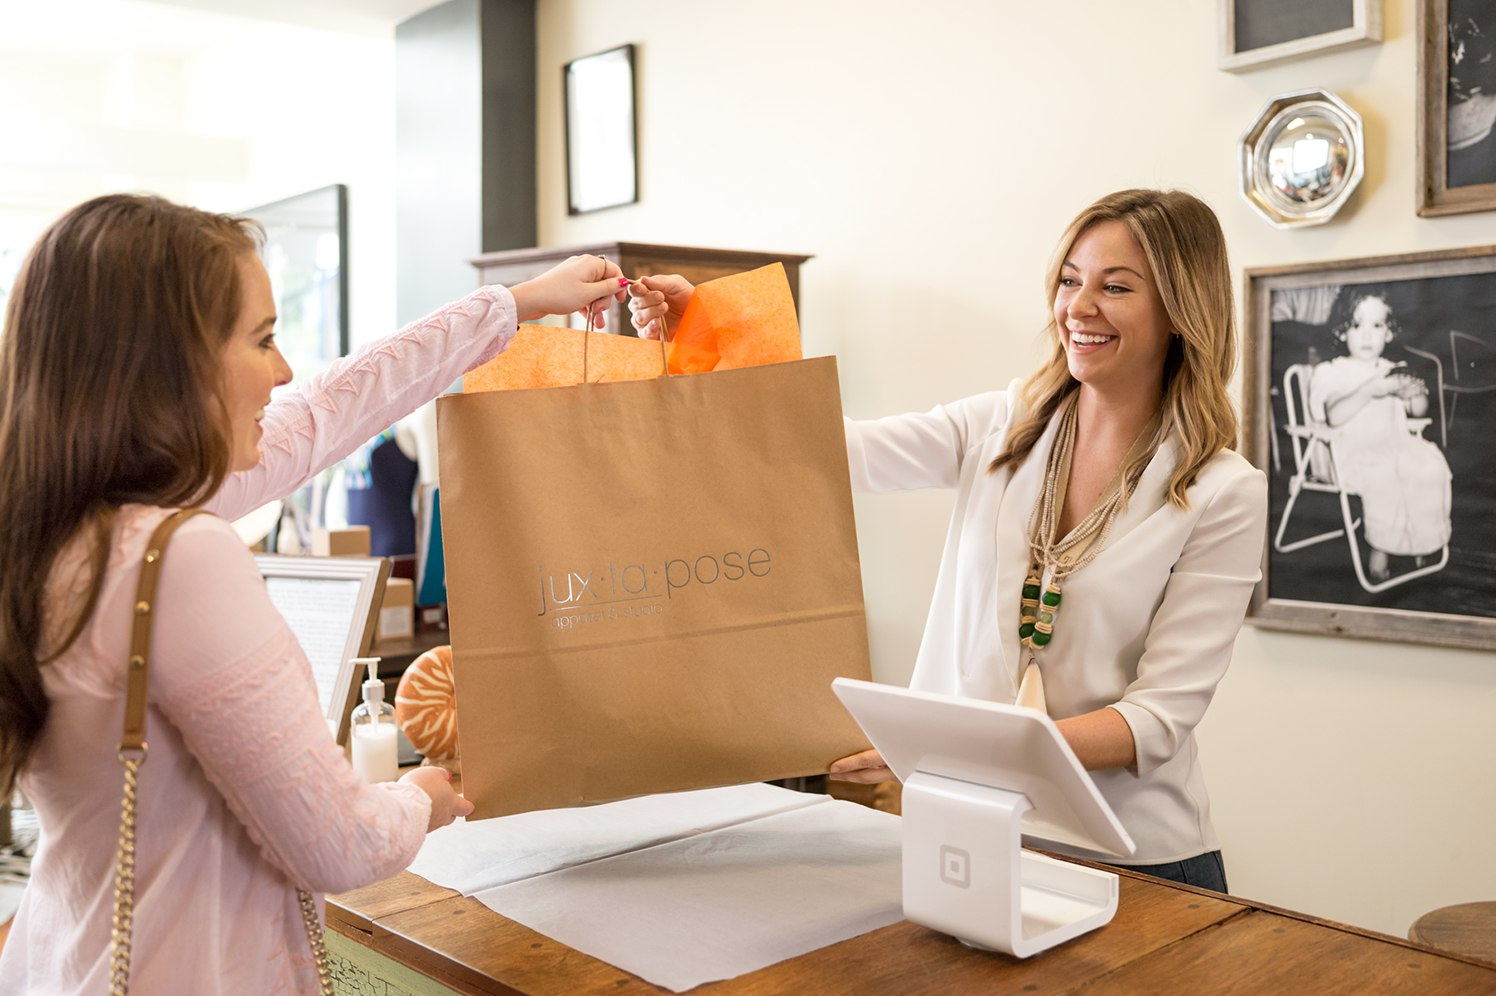 A trained cashier handing over a purchase